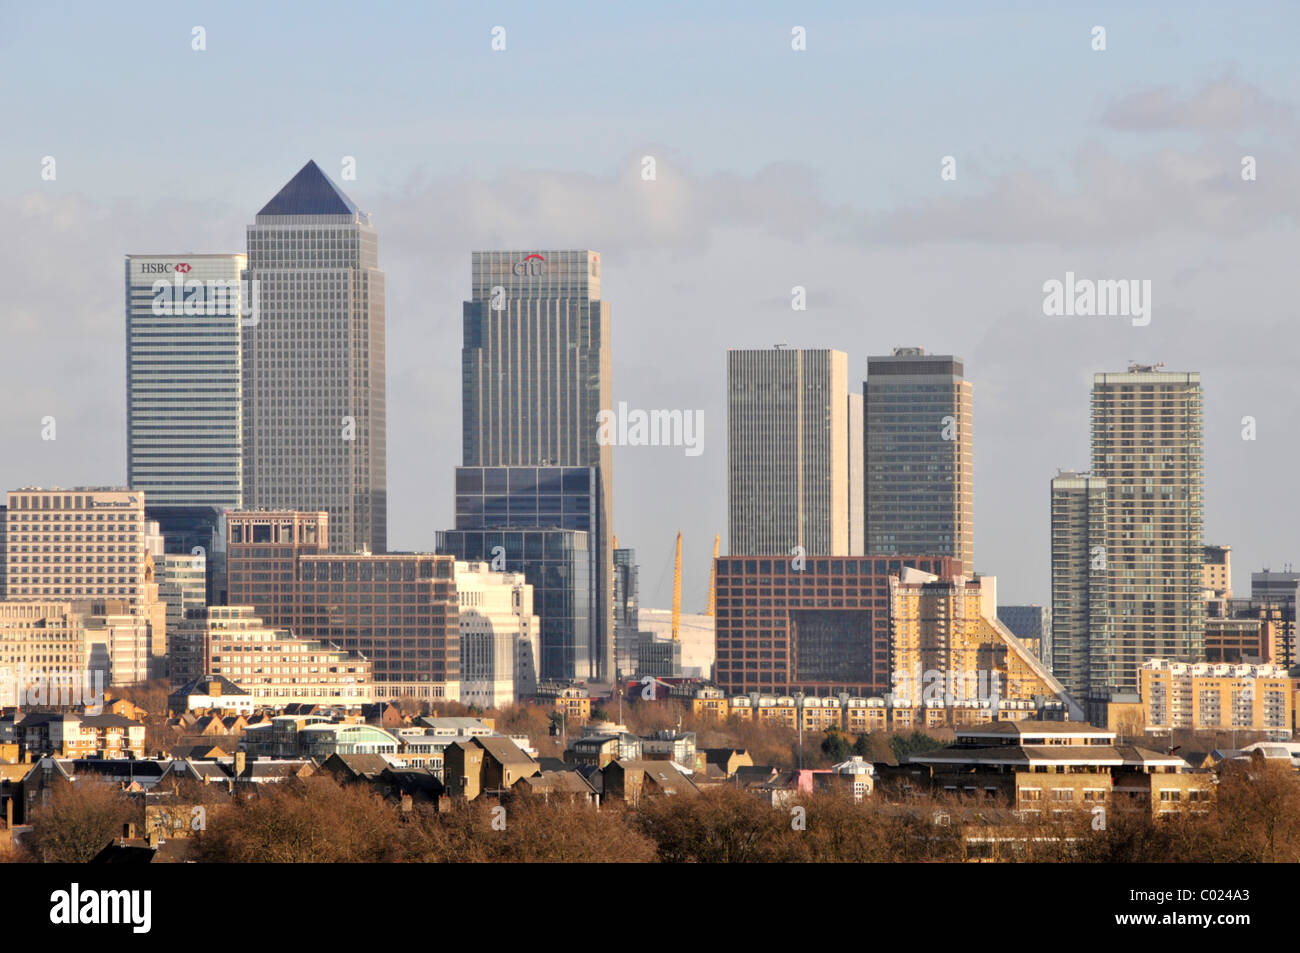 Urban landscape Docklands area of Canary Wharf financial district London city skyline skyscraper landmark bank buildings - Stock Image